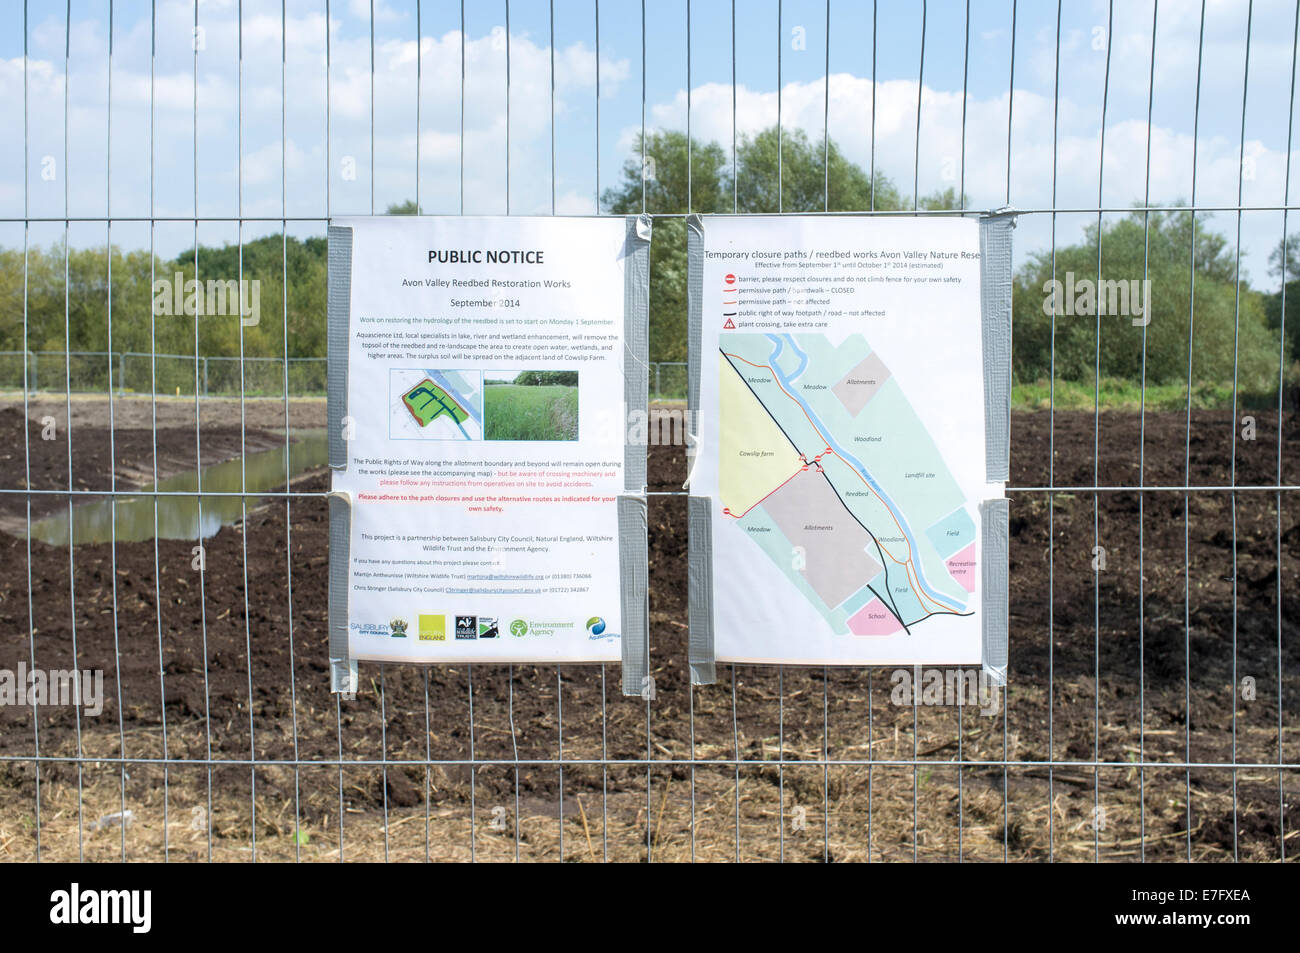 Public notice attached to wire fence outside of reed bed renovation project next to River Avon Salisbury Wiltshire - Stock Image